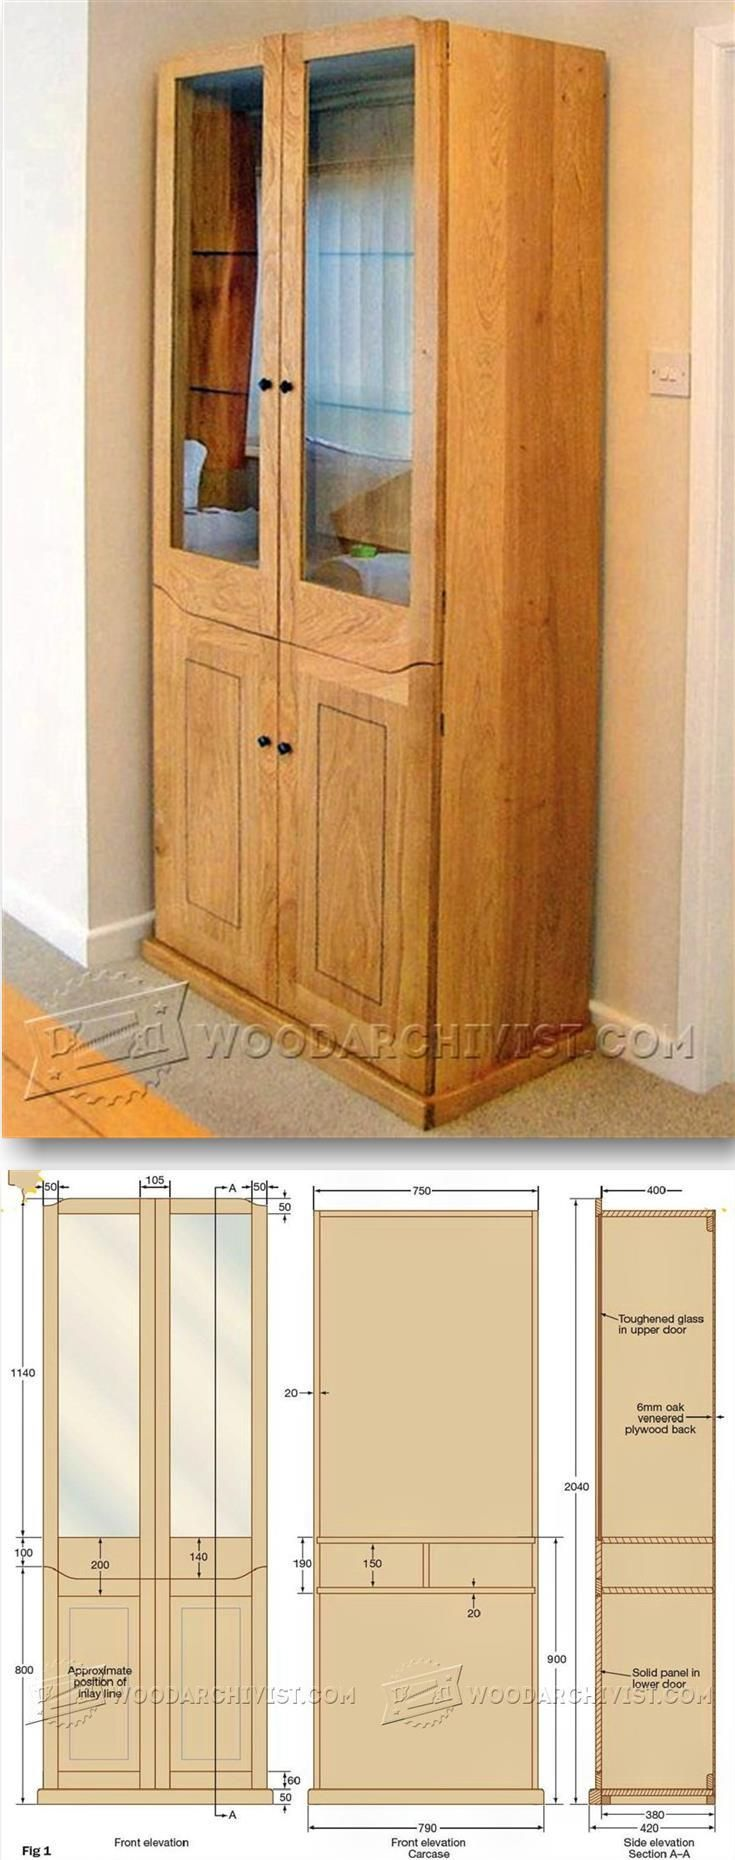 Display Cabinet Plans - Furniture Plans and Projects | WoodArchivist.com